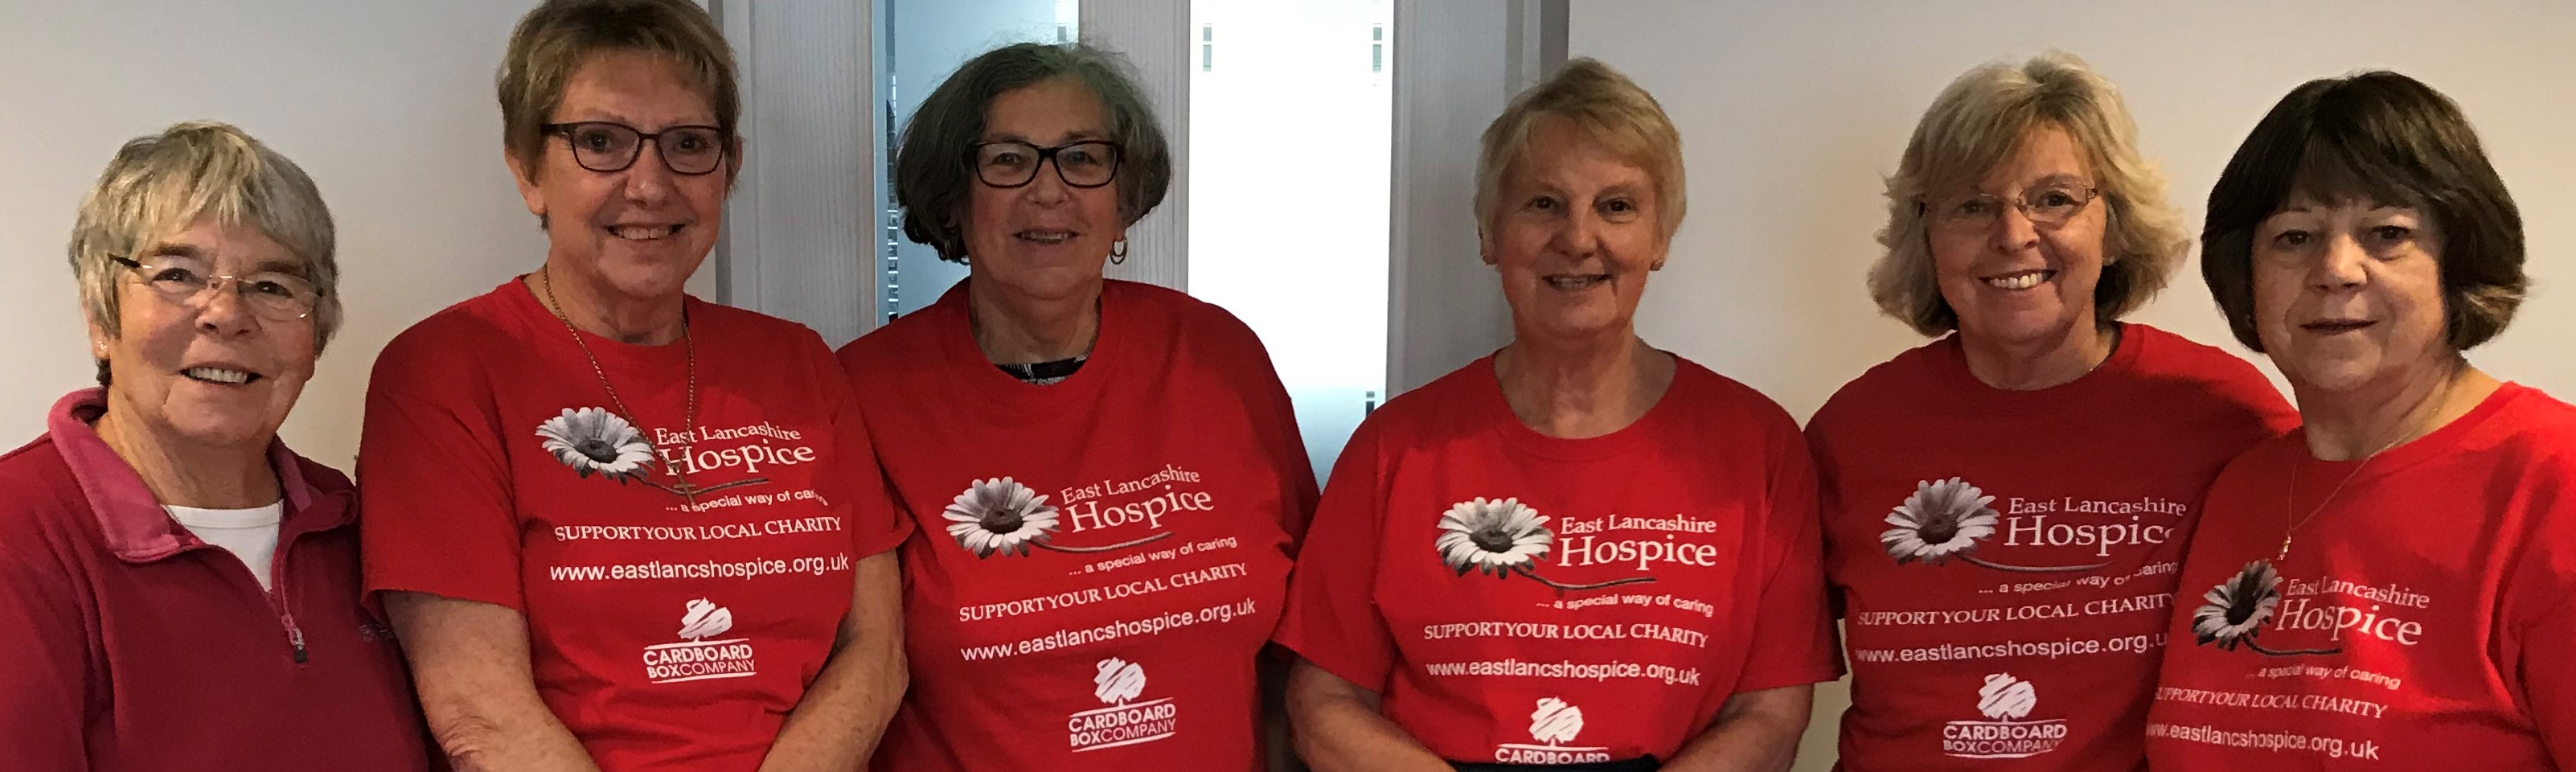 Contact East Lancashire Hospice